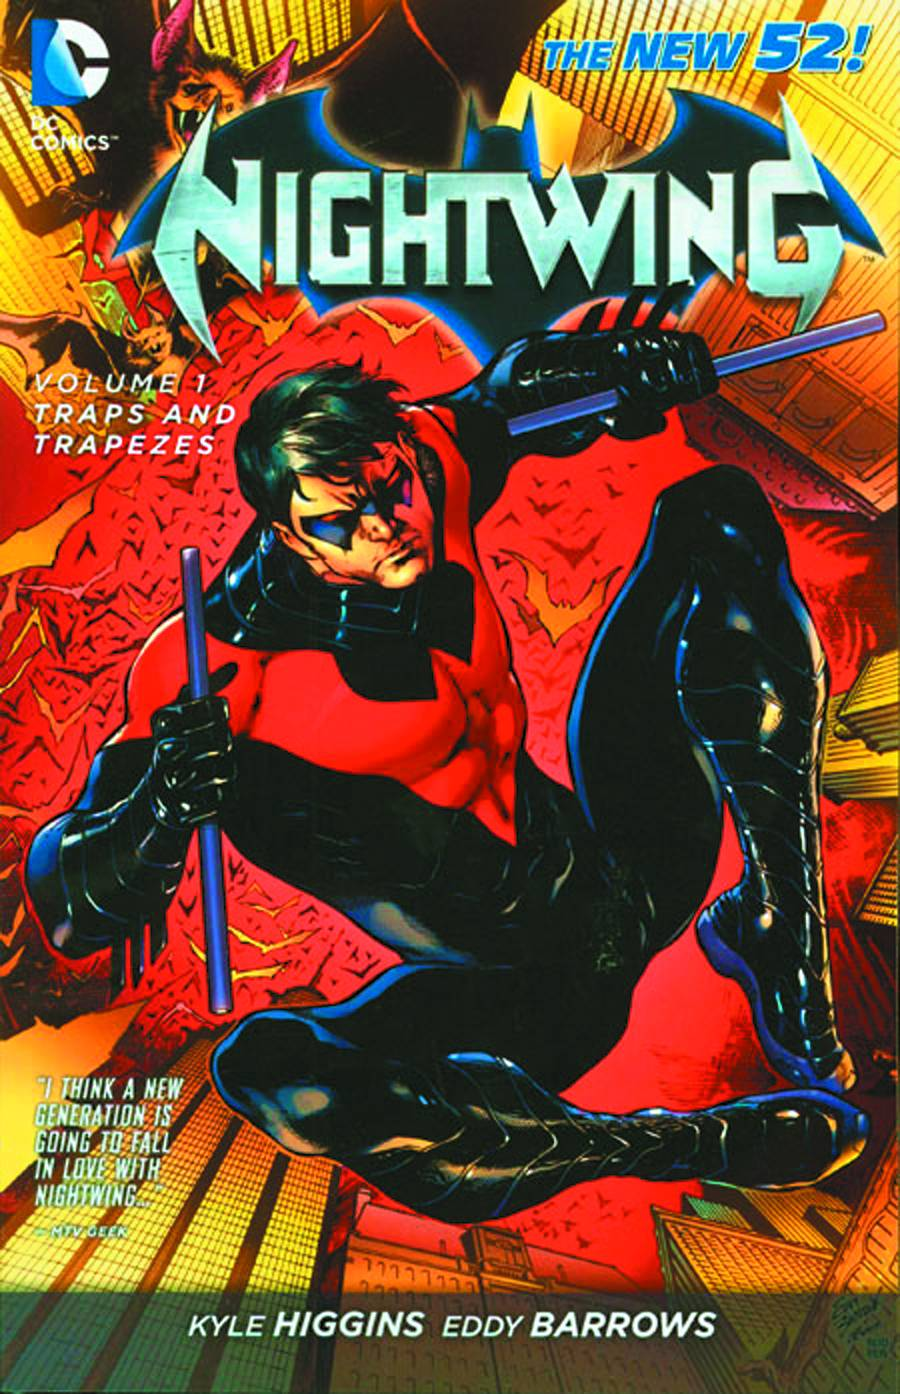 Nightwing Tp Vol 01 Traps And Trapezes (New 52)